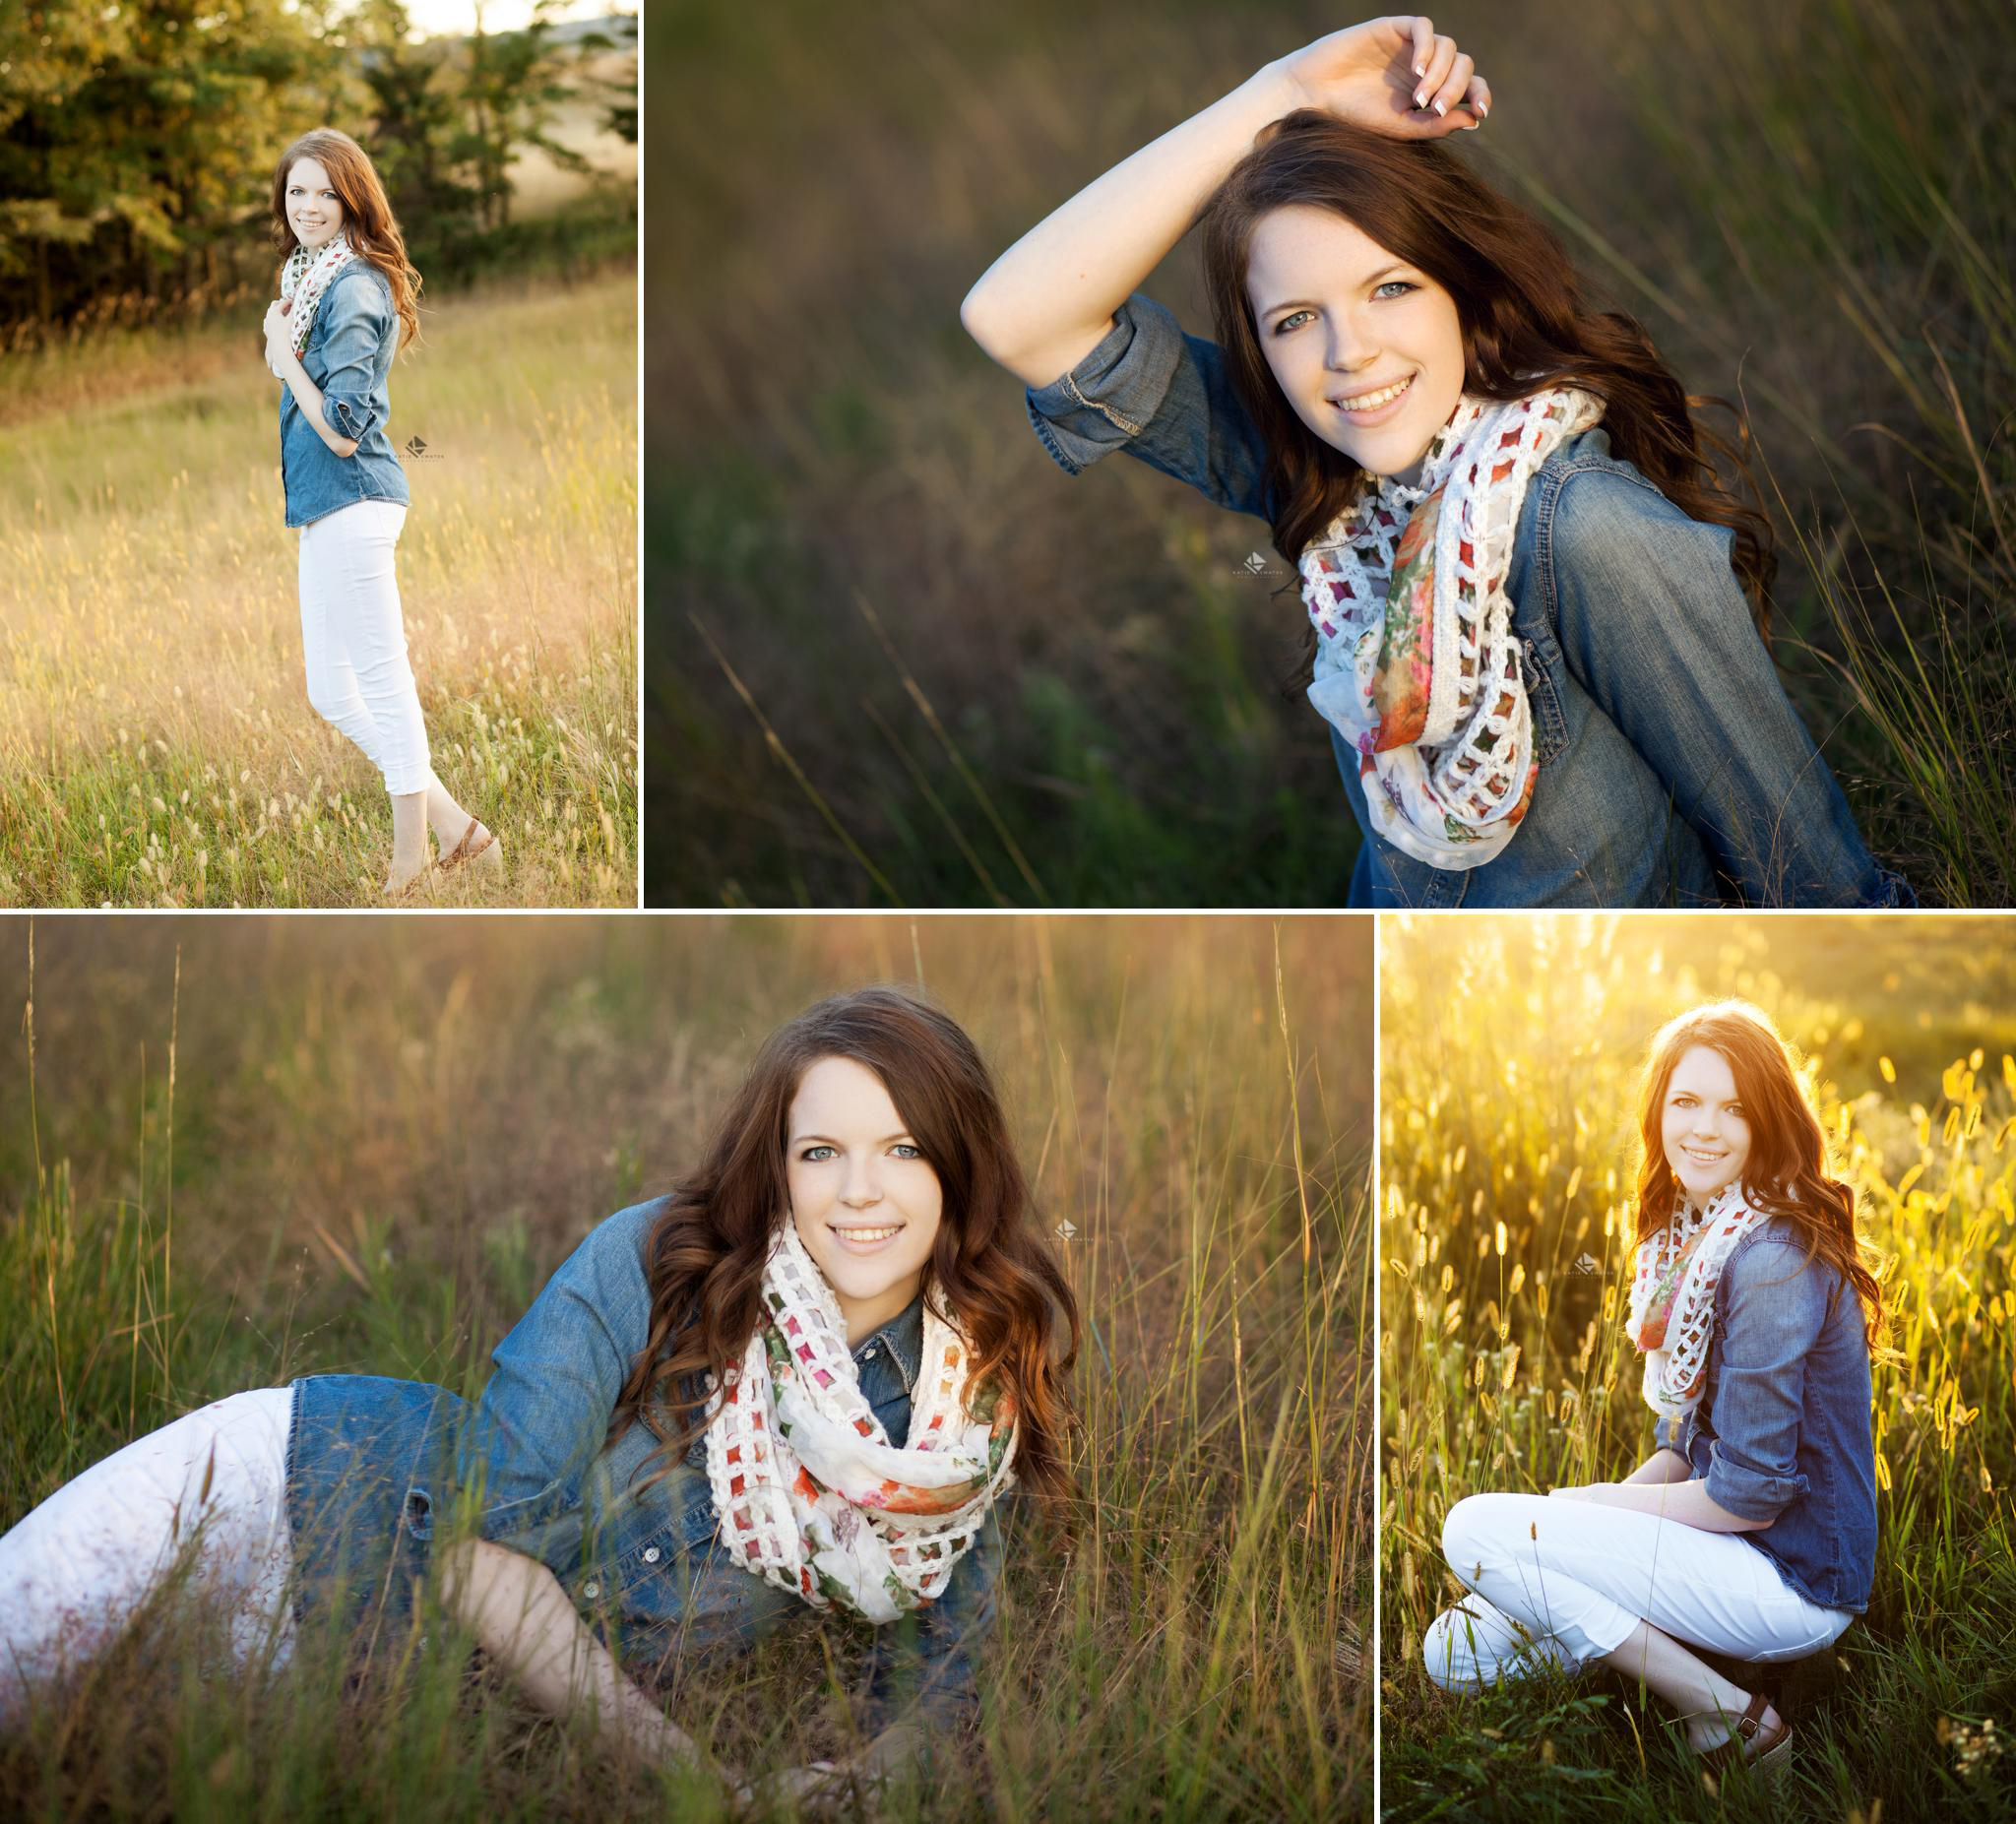 red headed senior girl in denim top with white pants in a green grass field